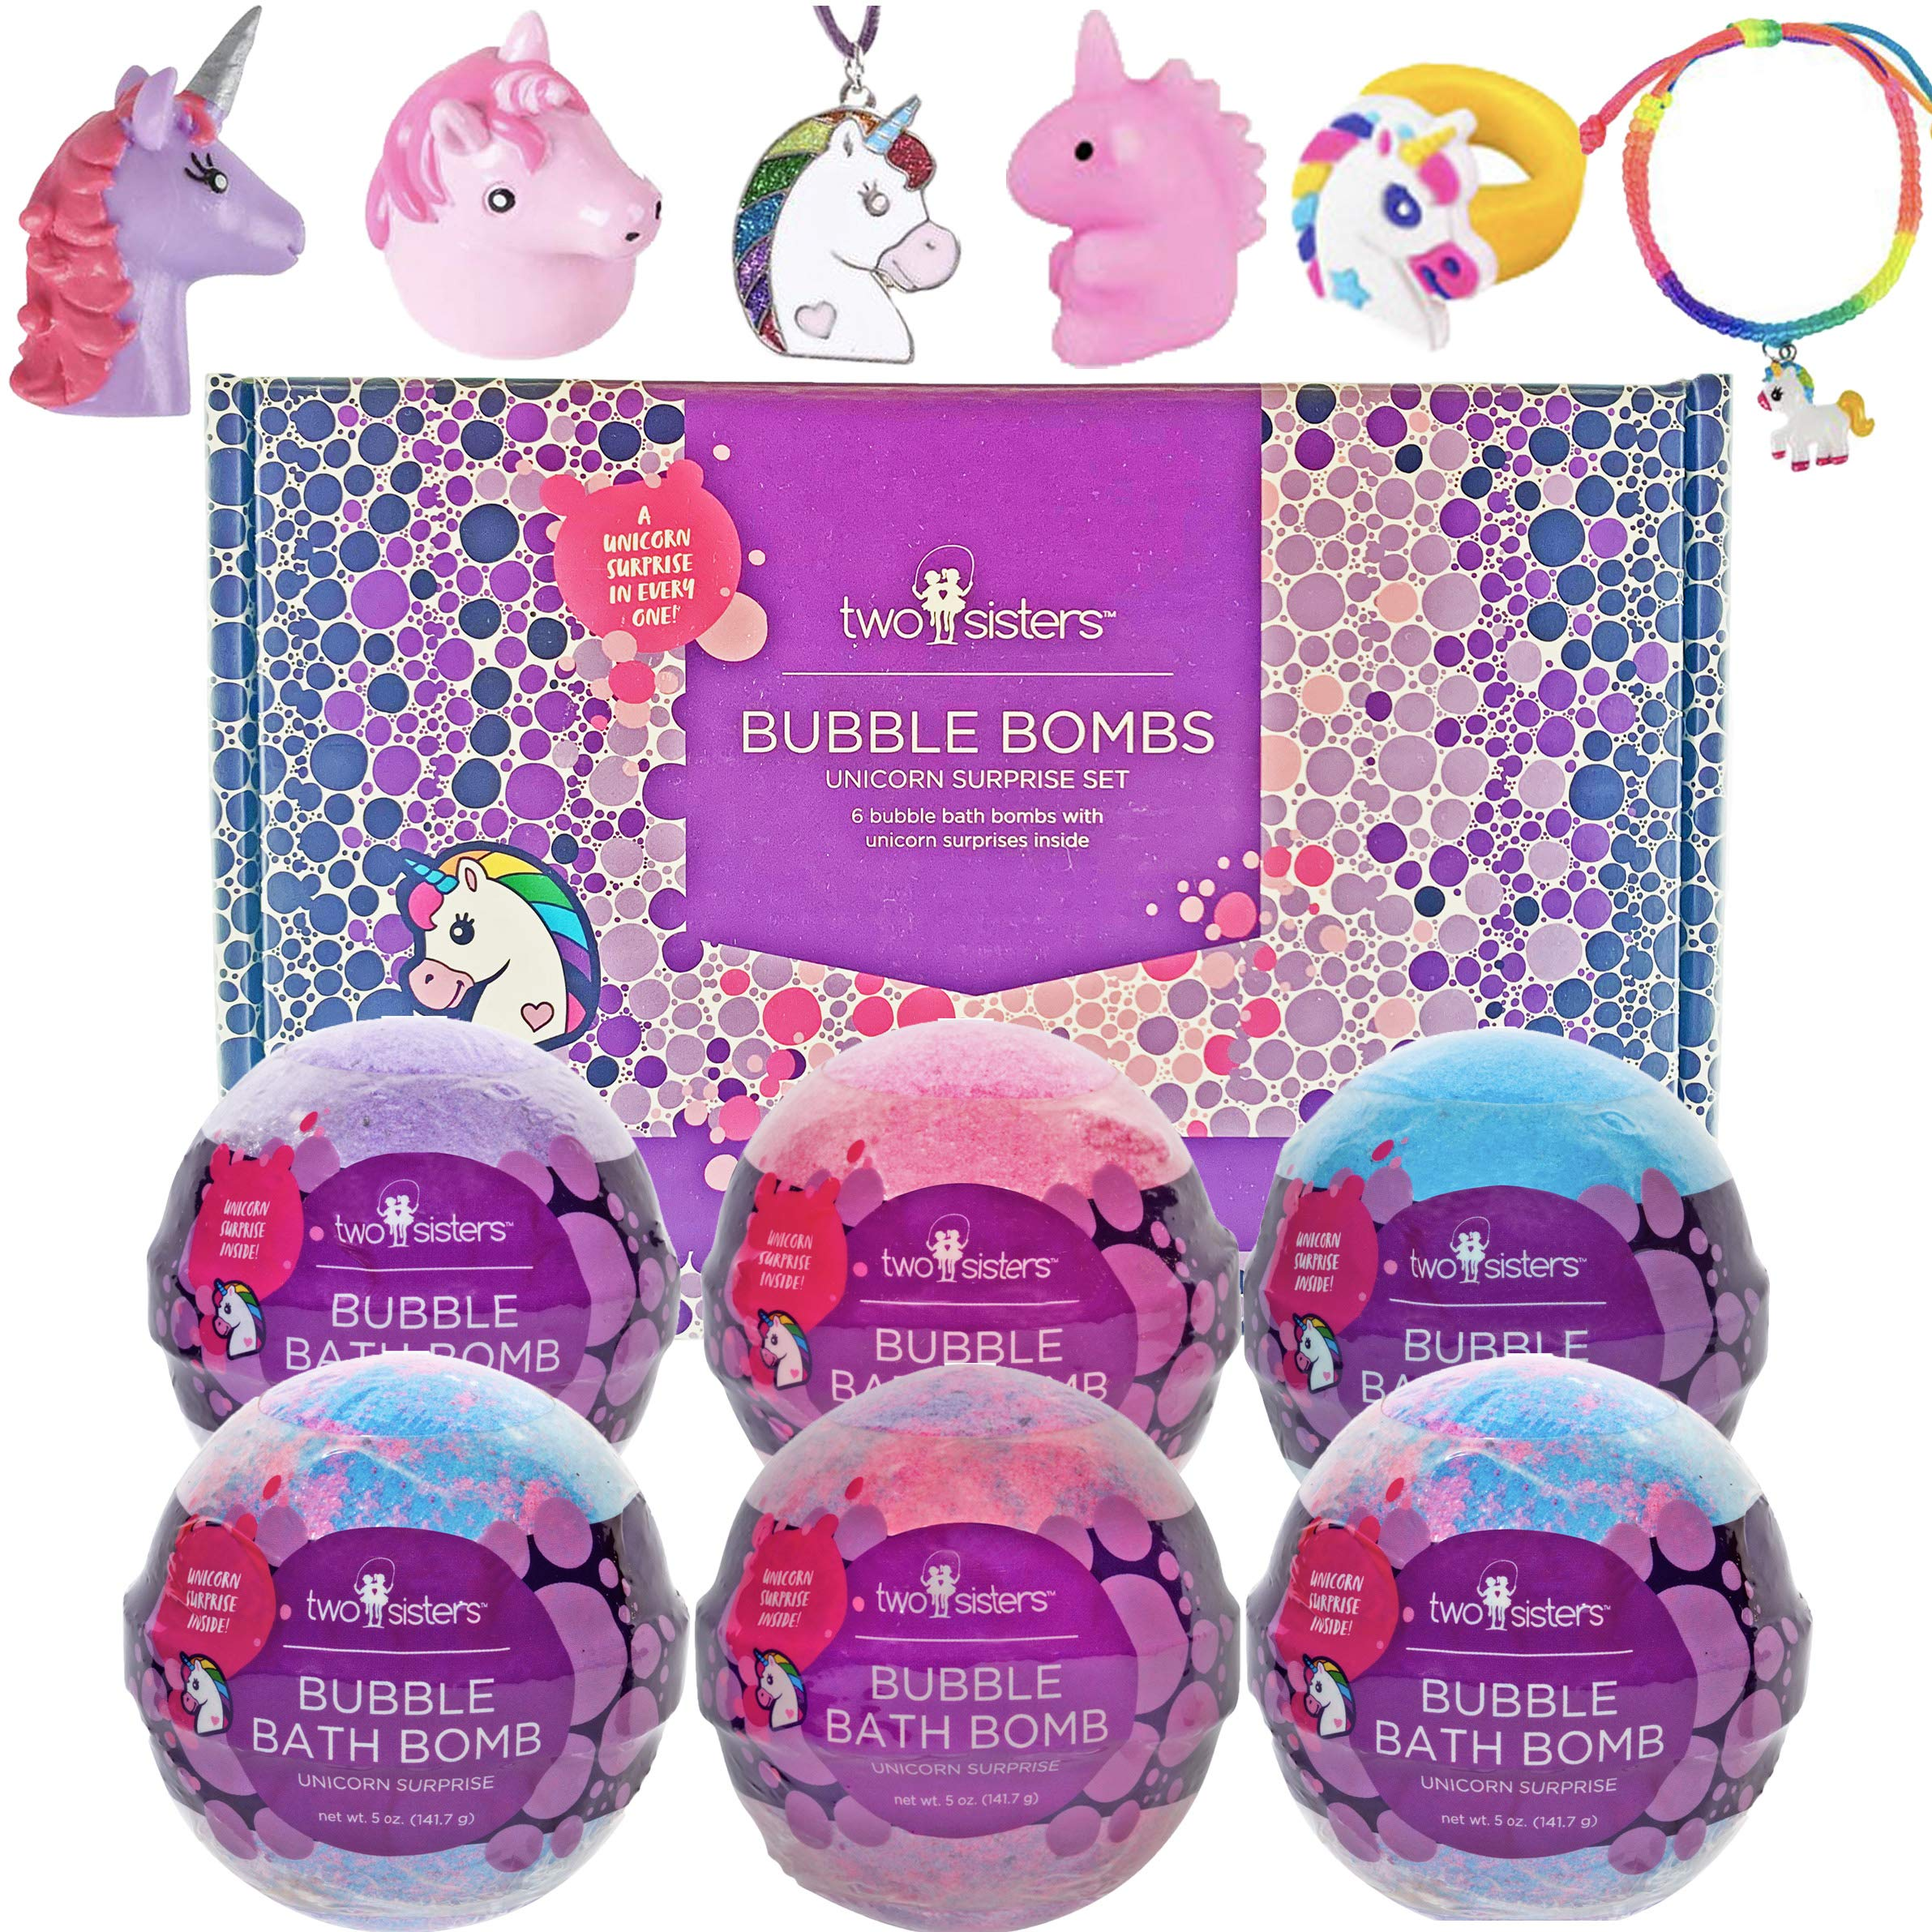 Unicorn Bubble Bath Bombs for Girls with Surprise Toys Inside by Two Sisters Spa. 6 Large 99% Natural Fizzies in Gift Box. Moisturizes Dry Sensitive Skin. Releases Color, Scent, and Bubbles.